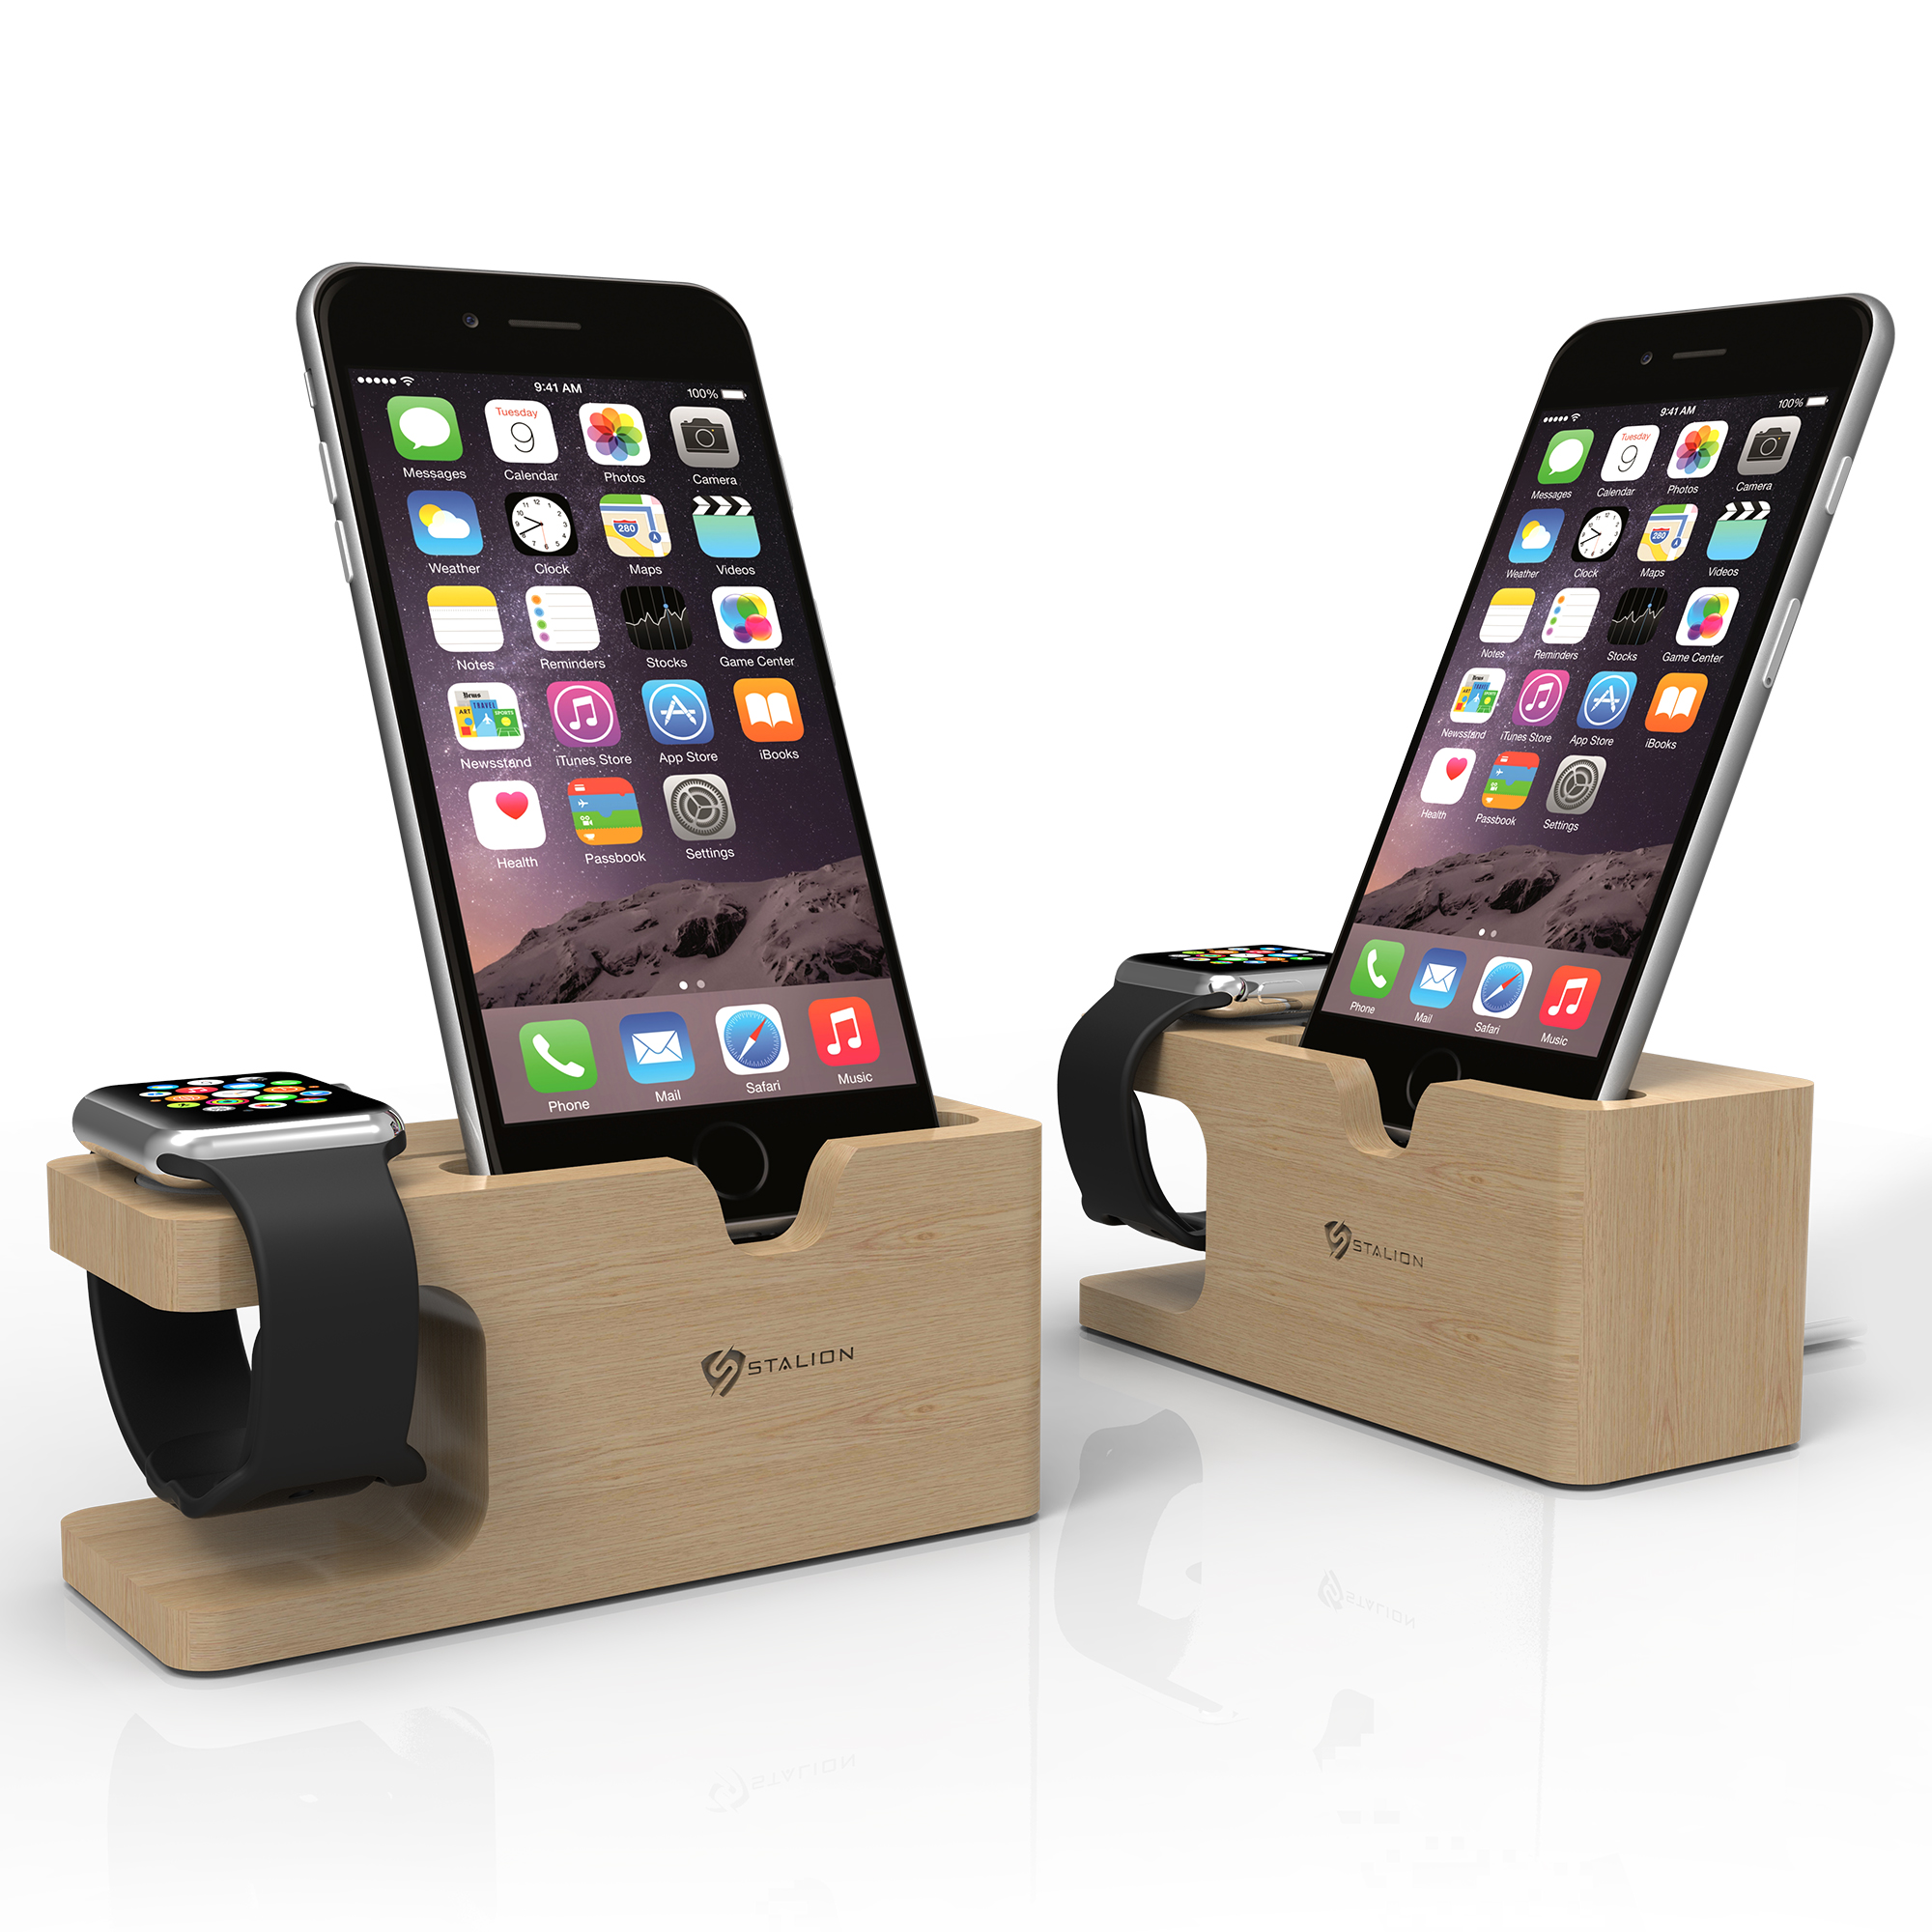 stalion stand desktop charging dock station for iphone 6. Black Bedroom Furniture Sets. Home Design Ideas